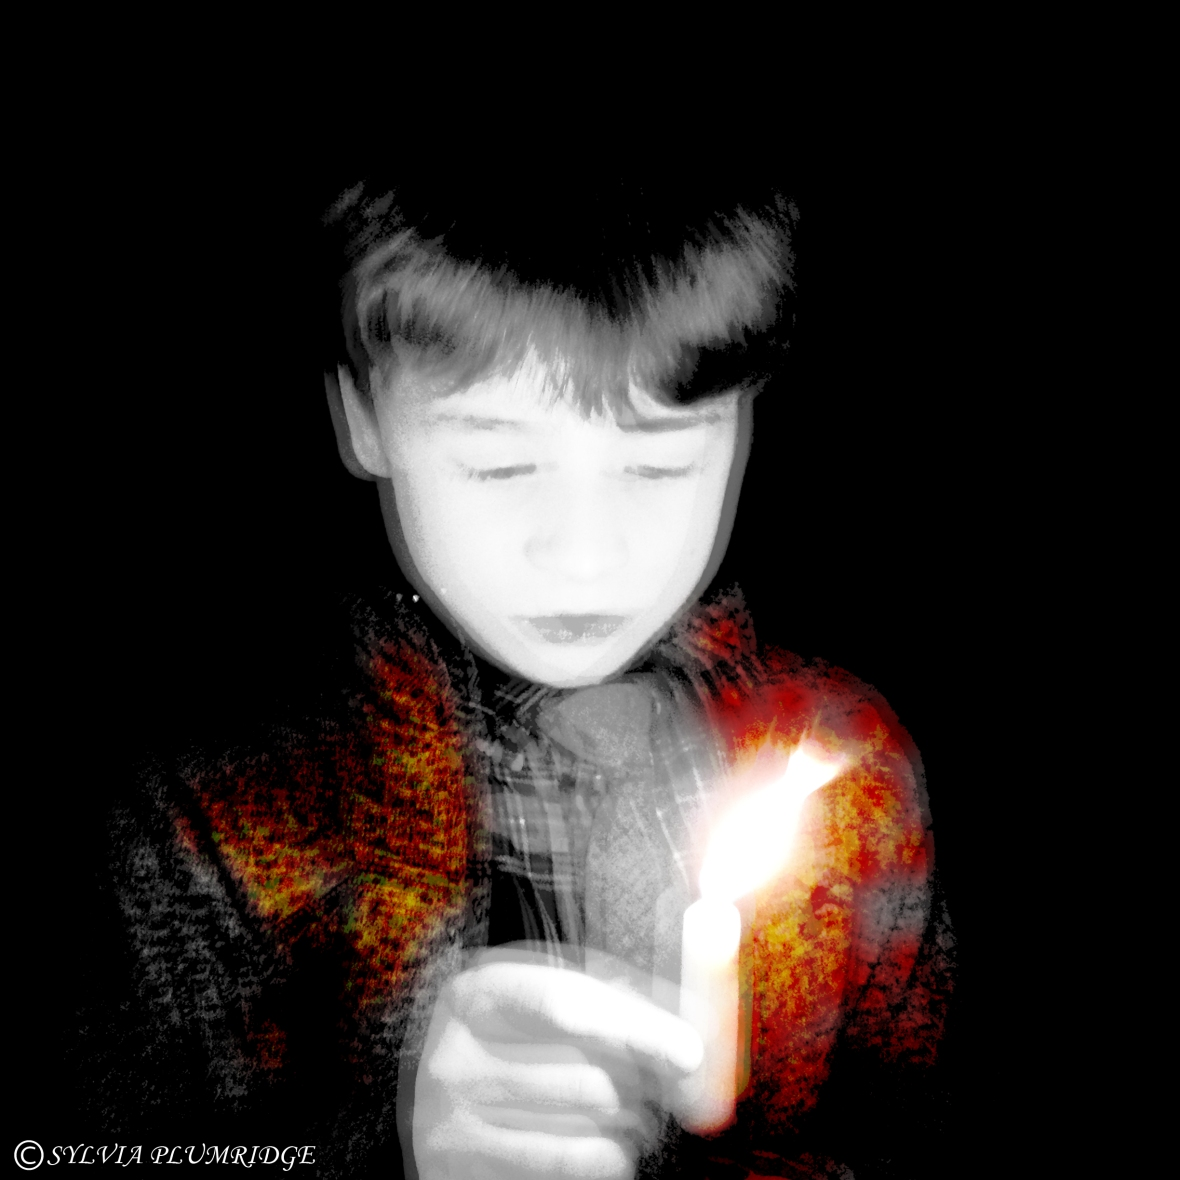 The boy and the candle